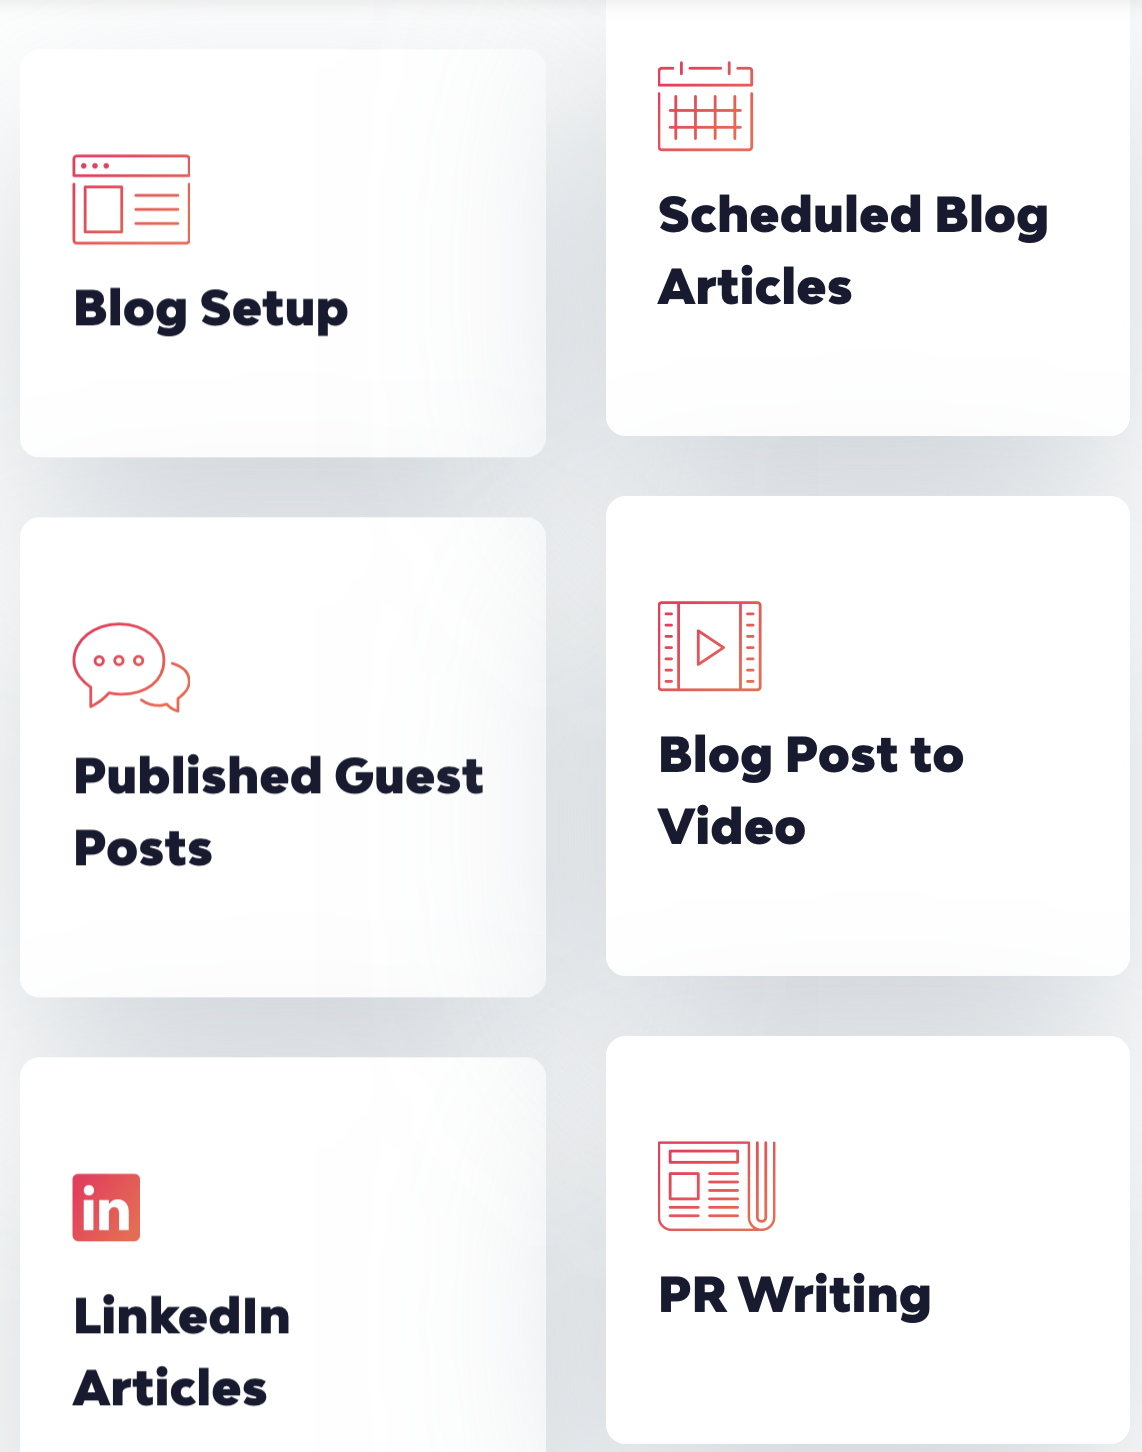 Radcrafters blog setup services, article writing. scheduled blogs, guest posting, LinkedIn, PR writing.